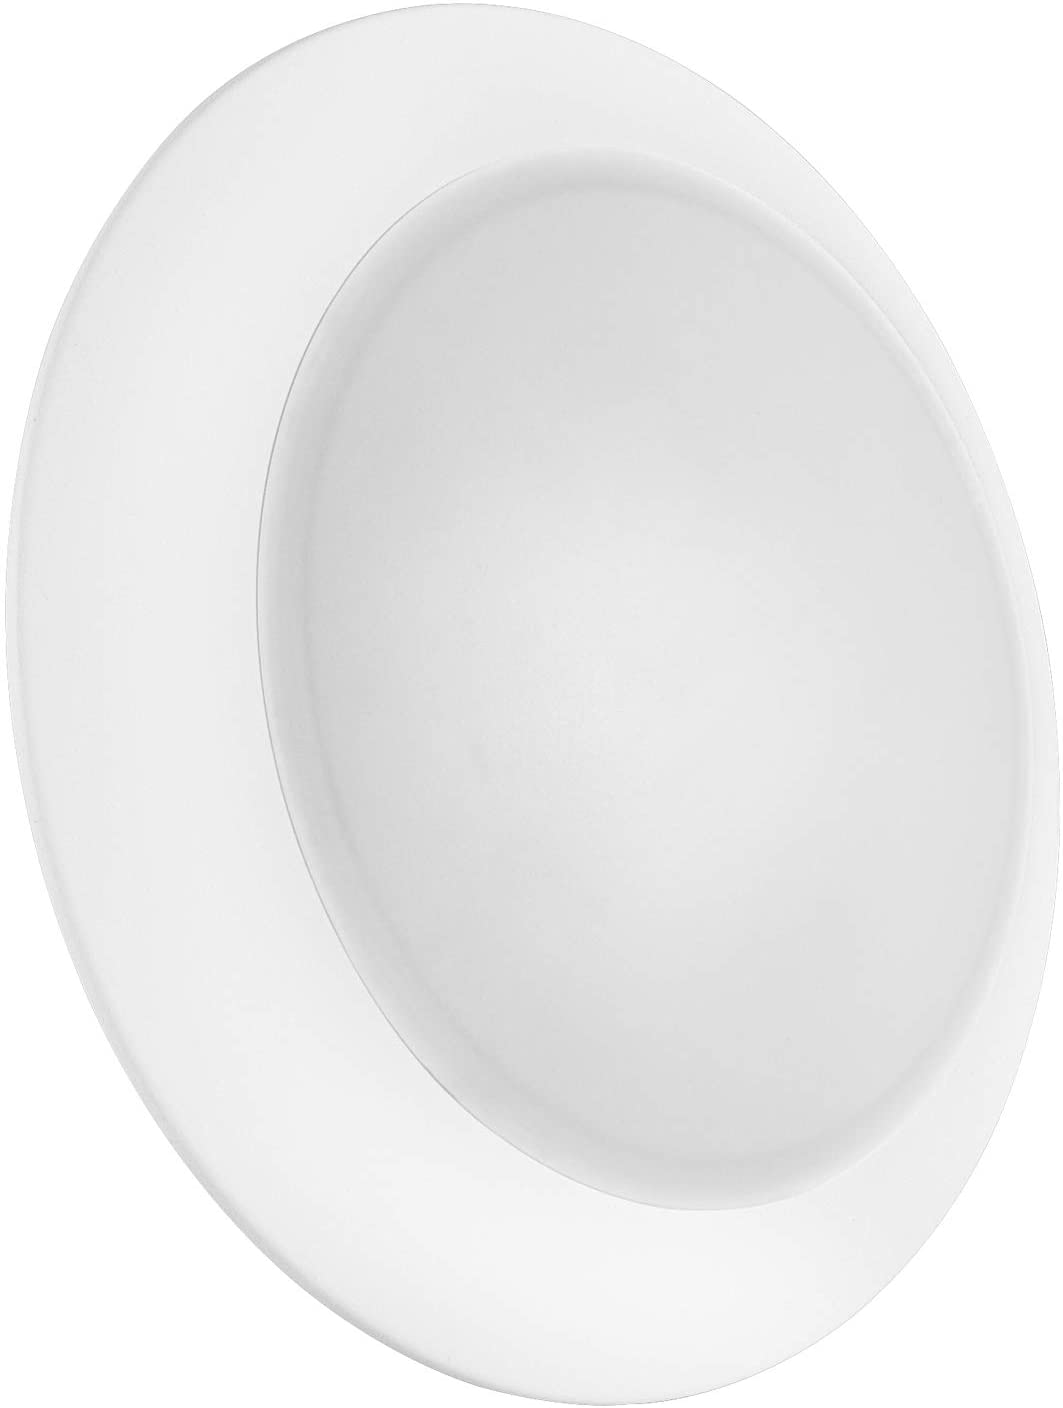 Luxrite 8 Inch LED Disk Light, 27W, 5000K Bright White, 2000 Lumens, Dimmable, Surface Mount LED Ceiling Light, Wet Rated, Energy Star, ETL Listed, Low Profile Flush Mount Light Fixture